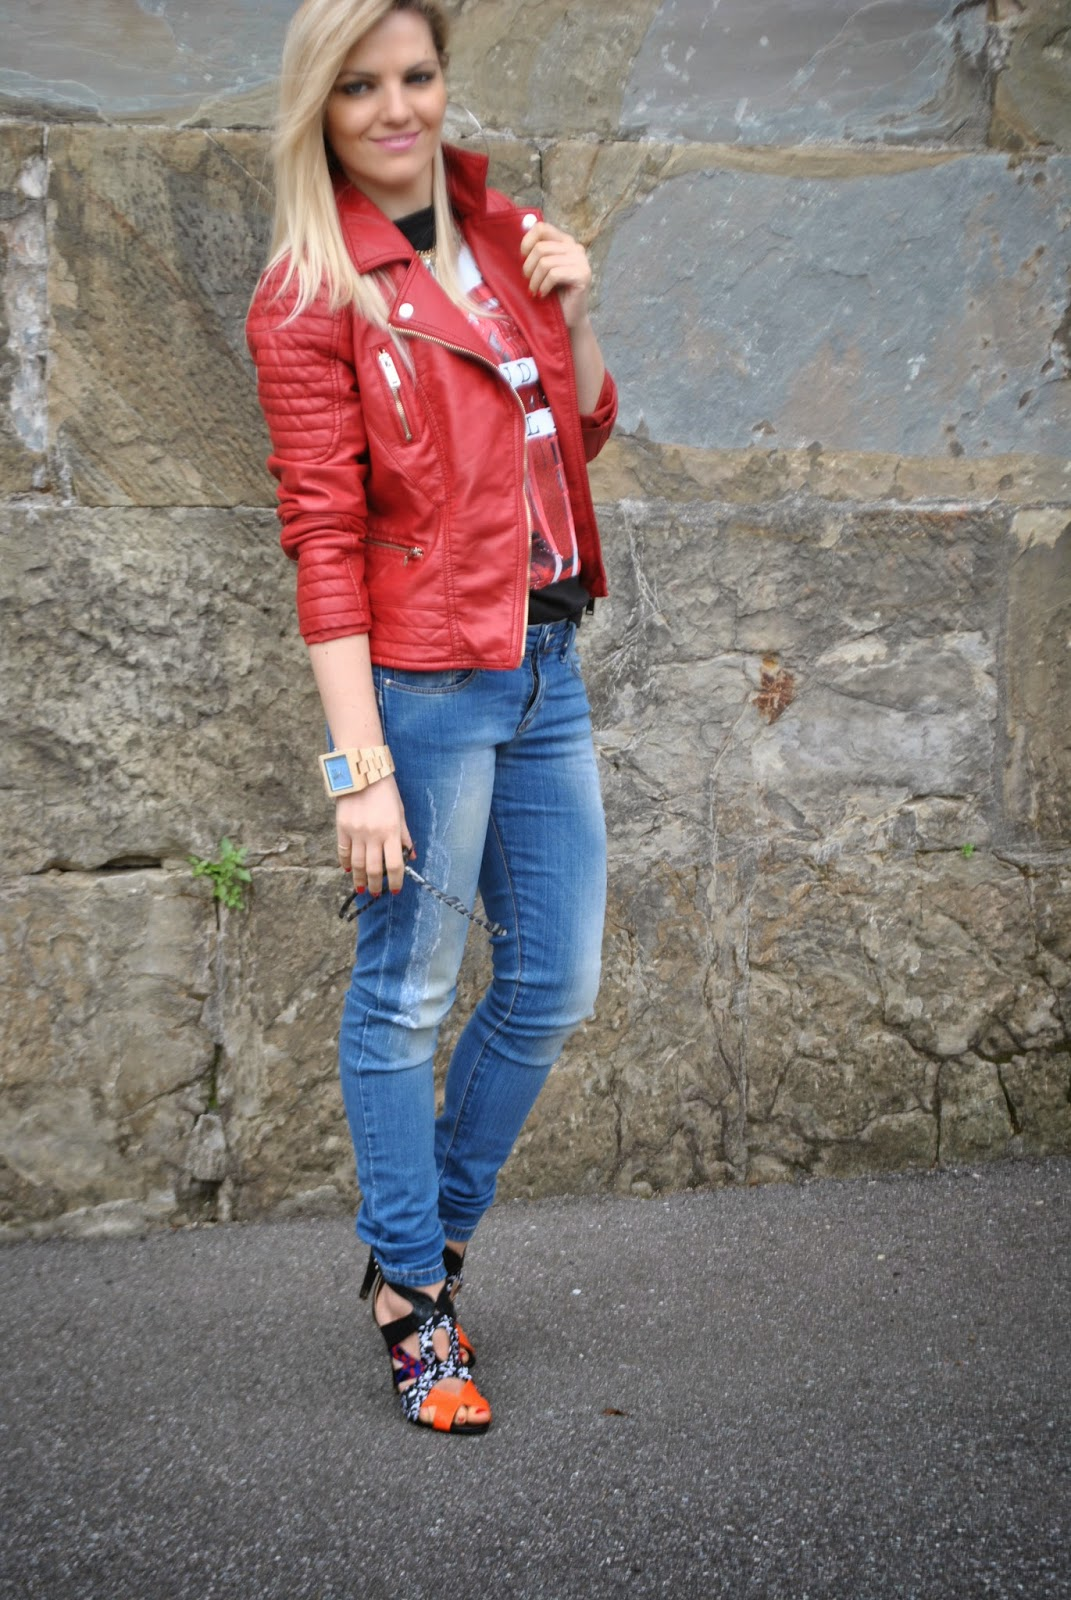 Estremamente Color-Block By FelyM.: OUTFT: JEANS SKINNY, HEELS AND RED LEATHER  KP38